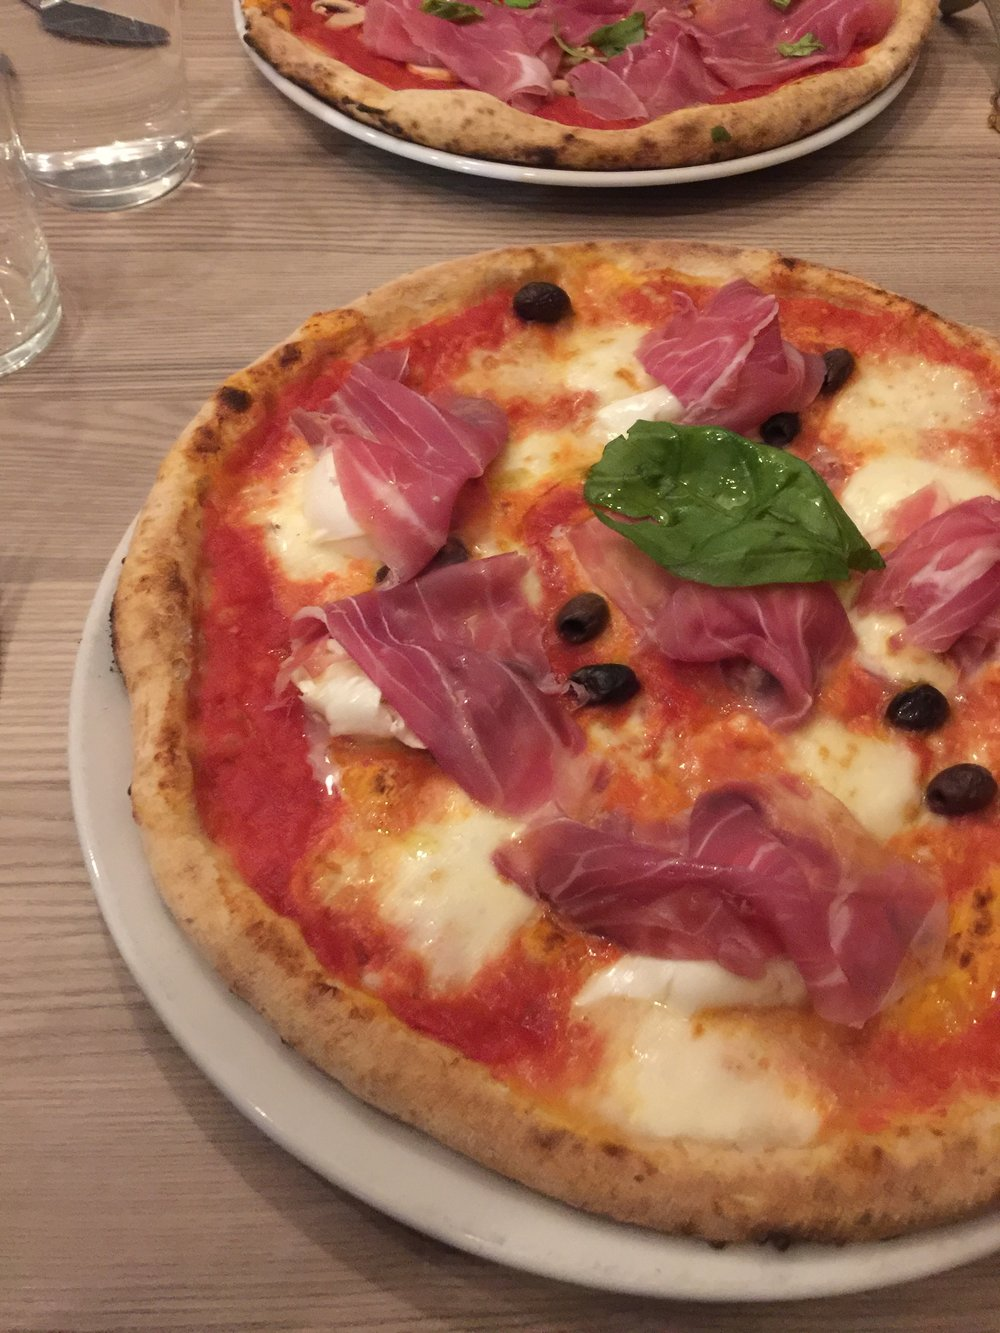 This was the best pizza I've ever tasted in Milan.